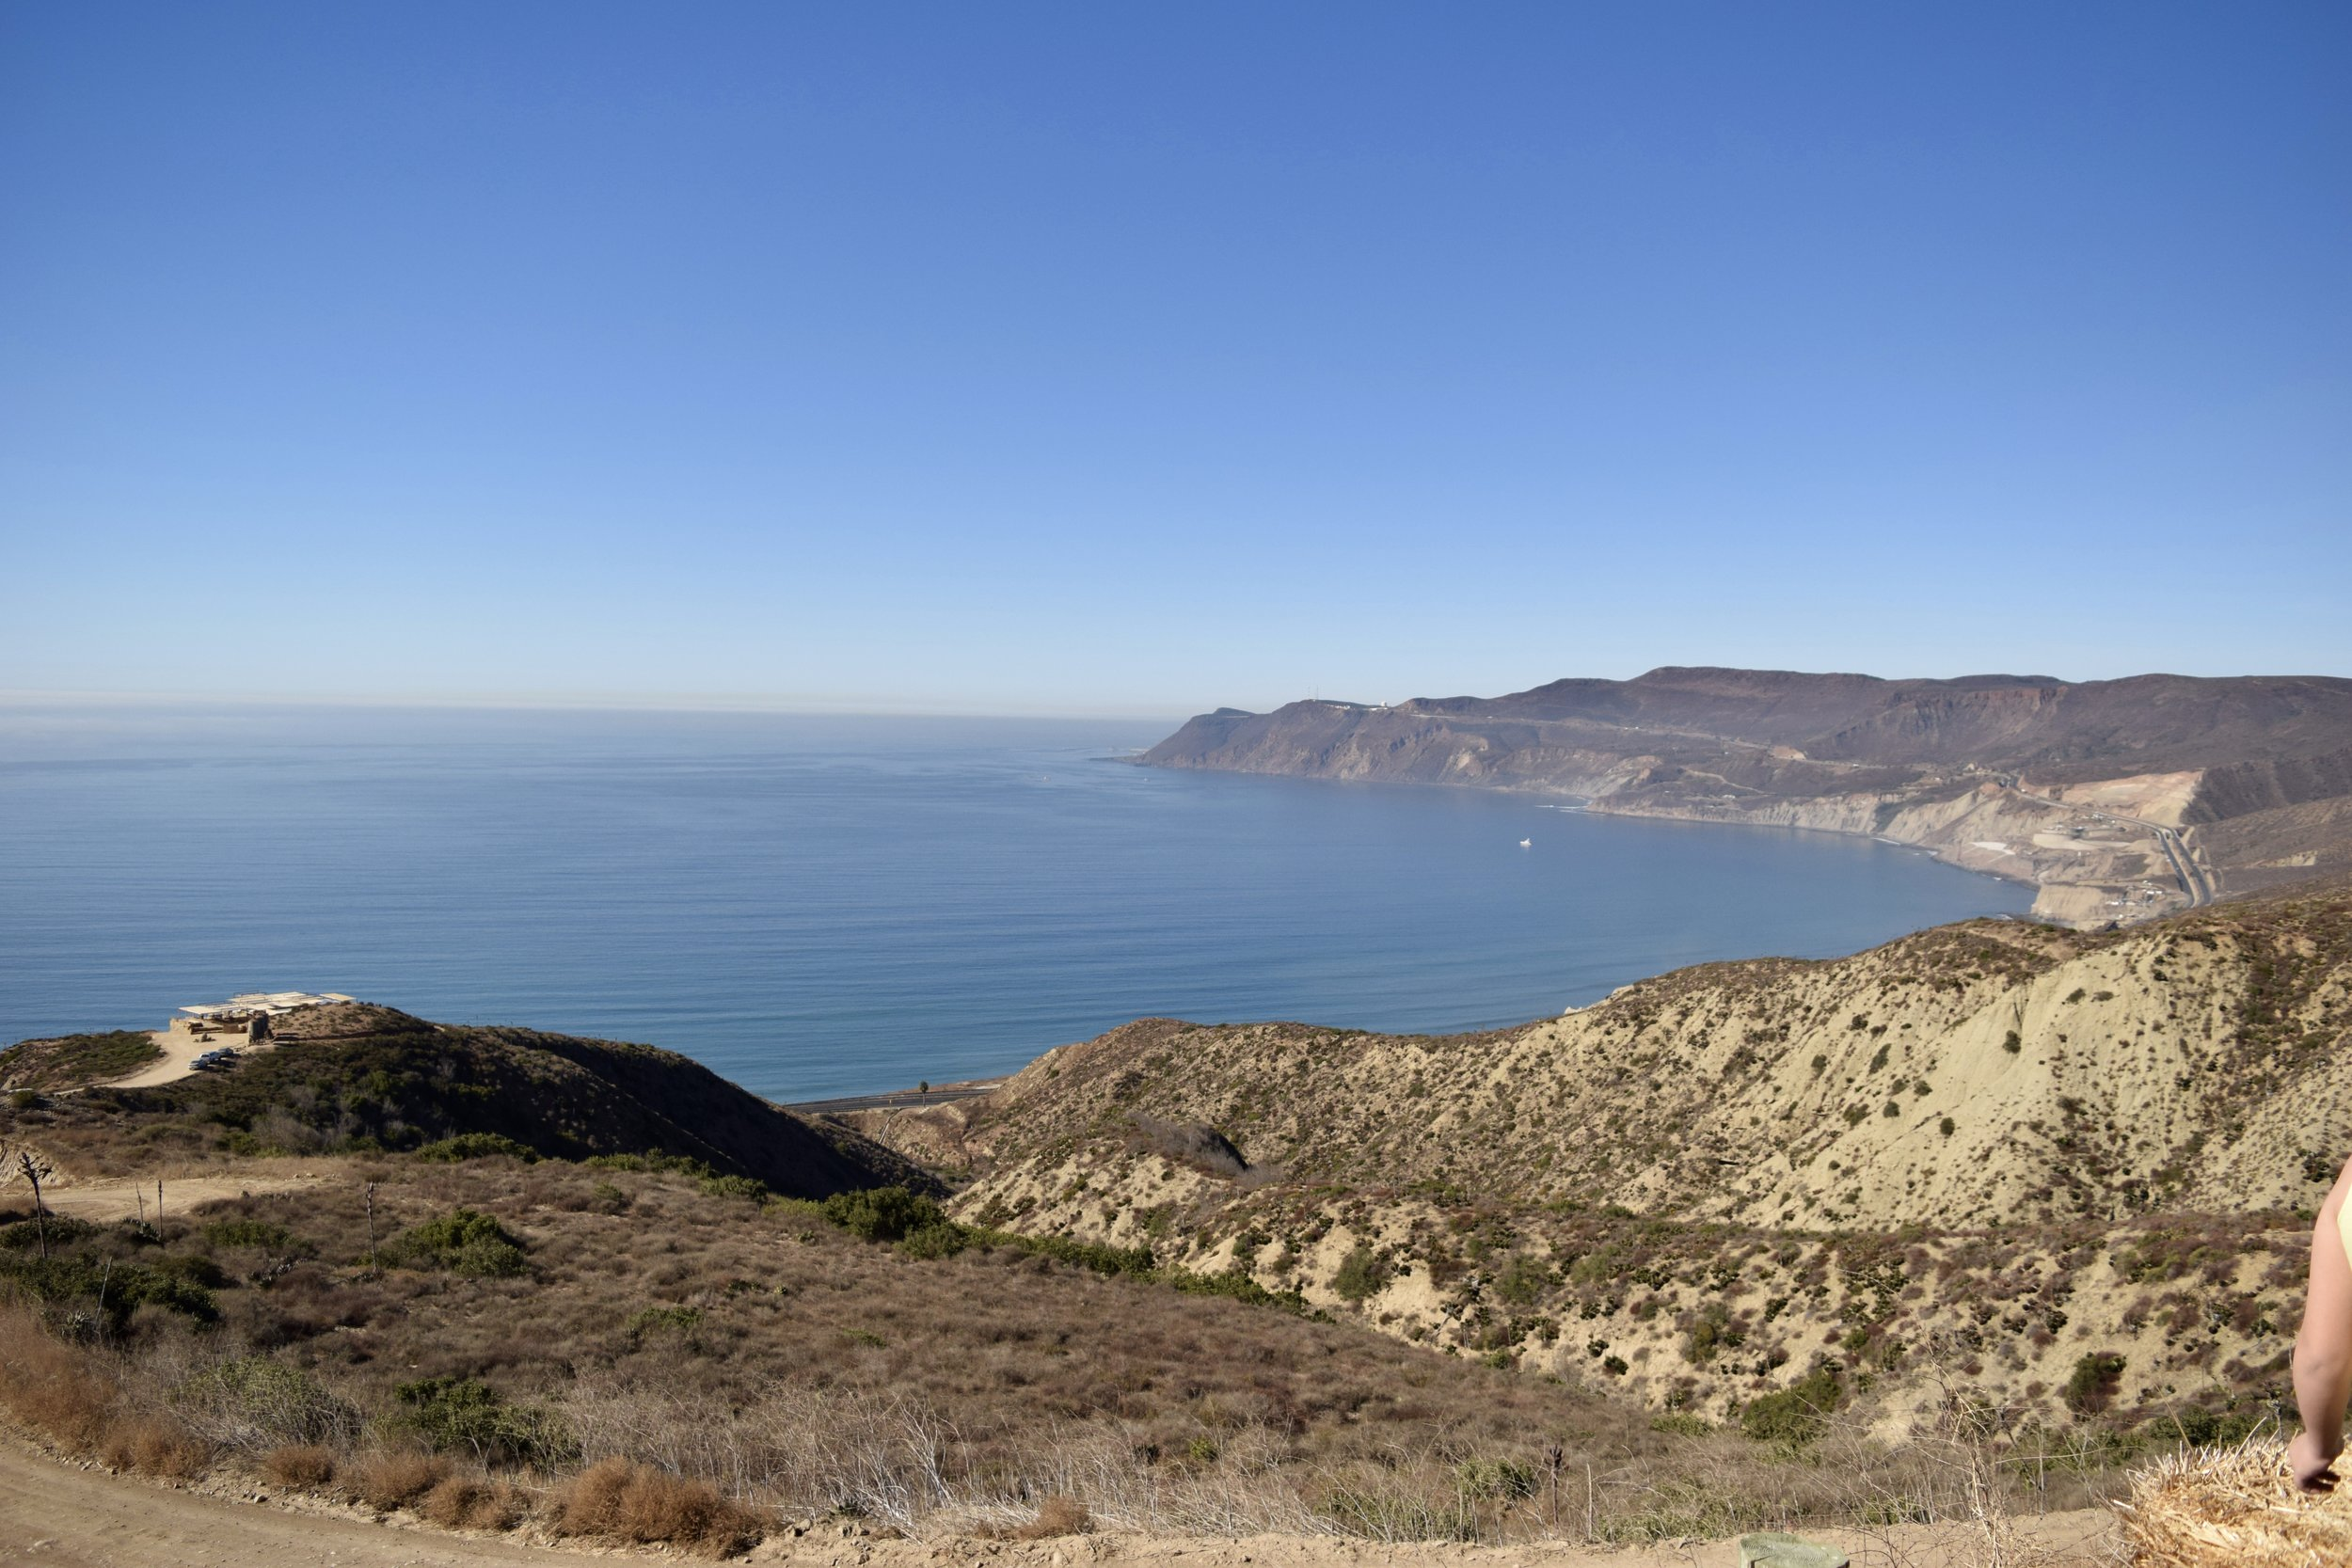 The scenic coast highway near Ensenada, Mexico.